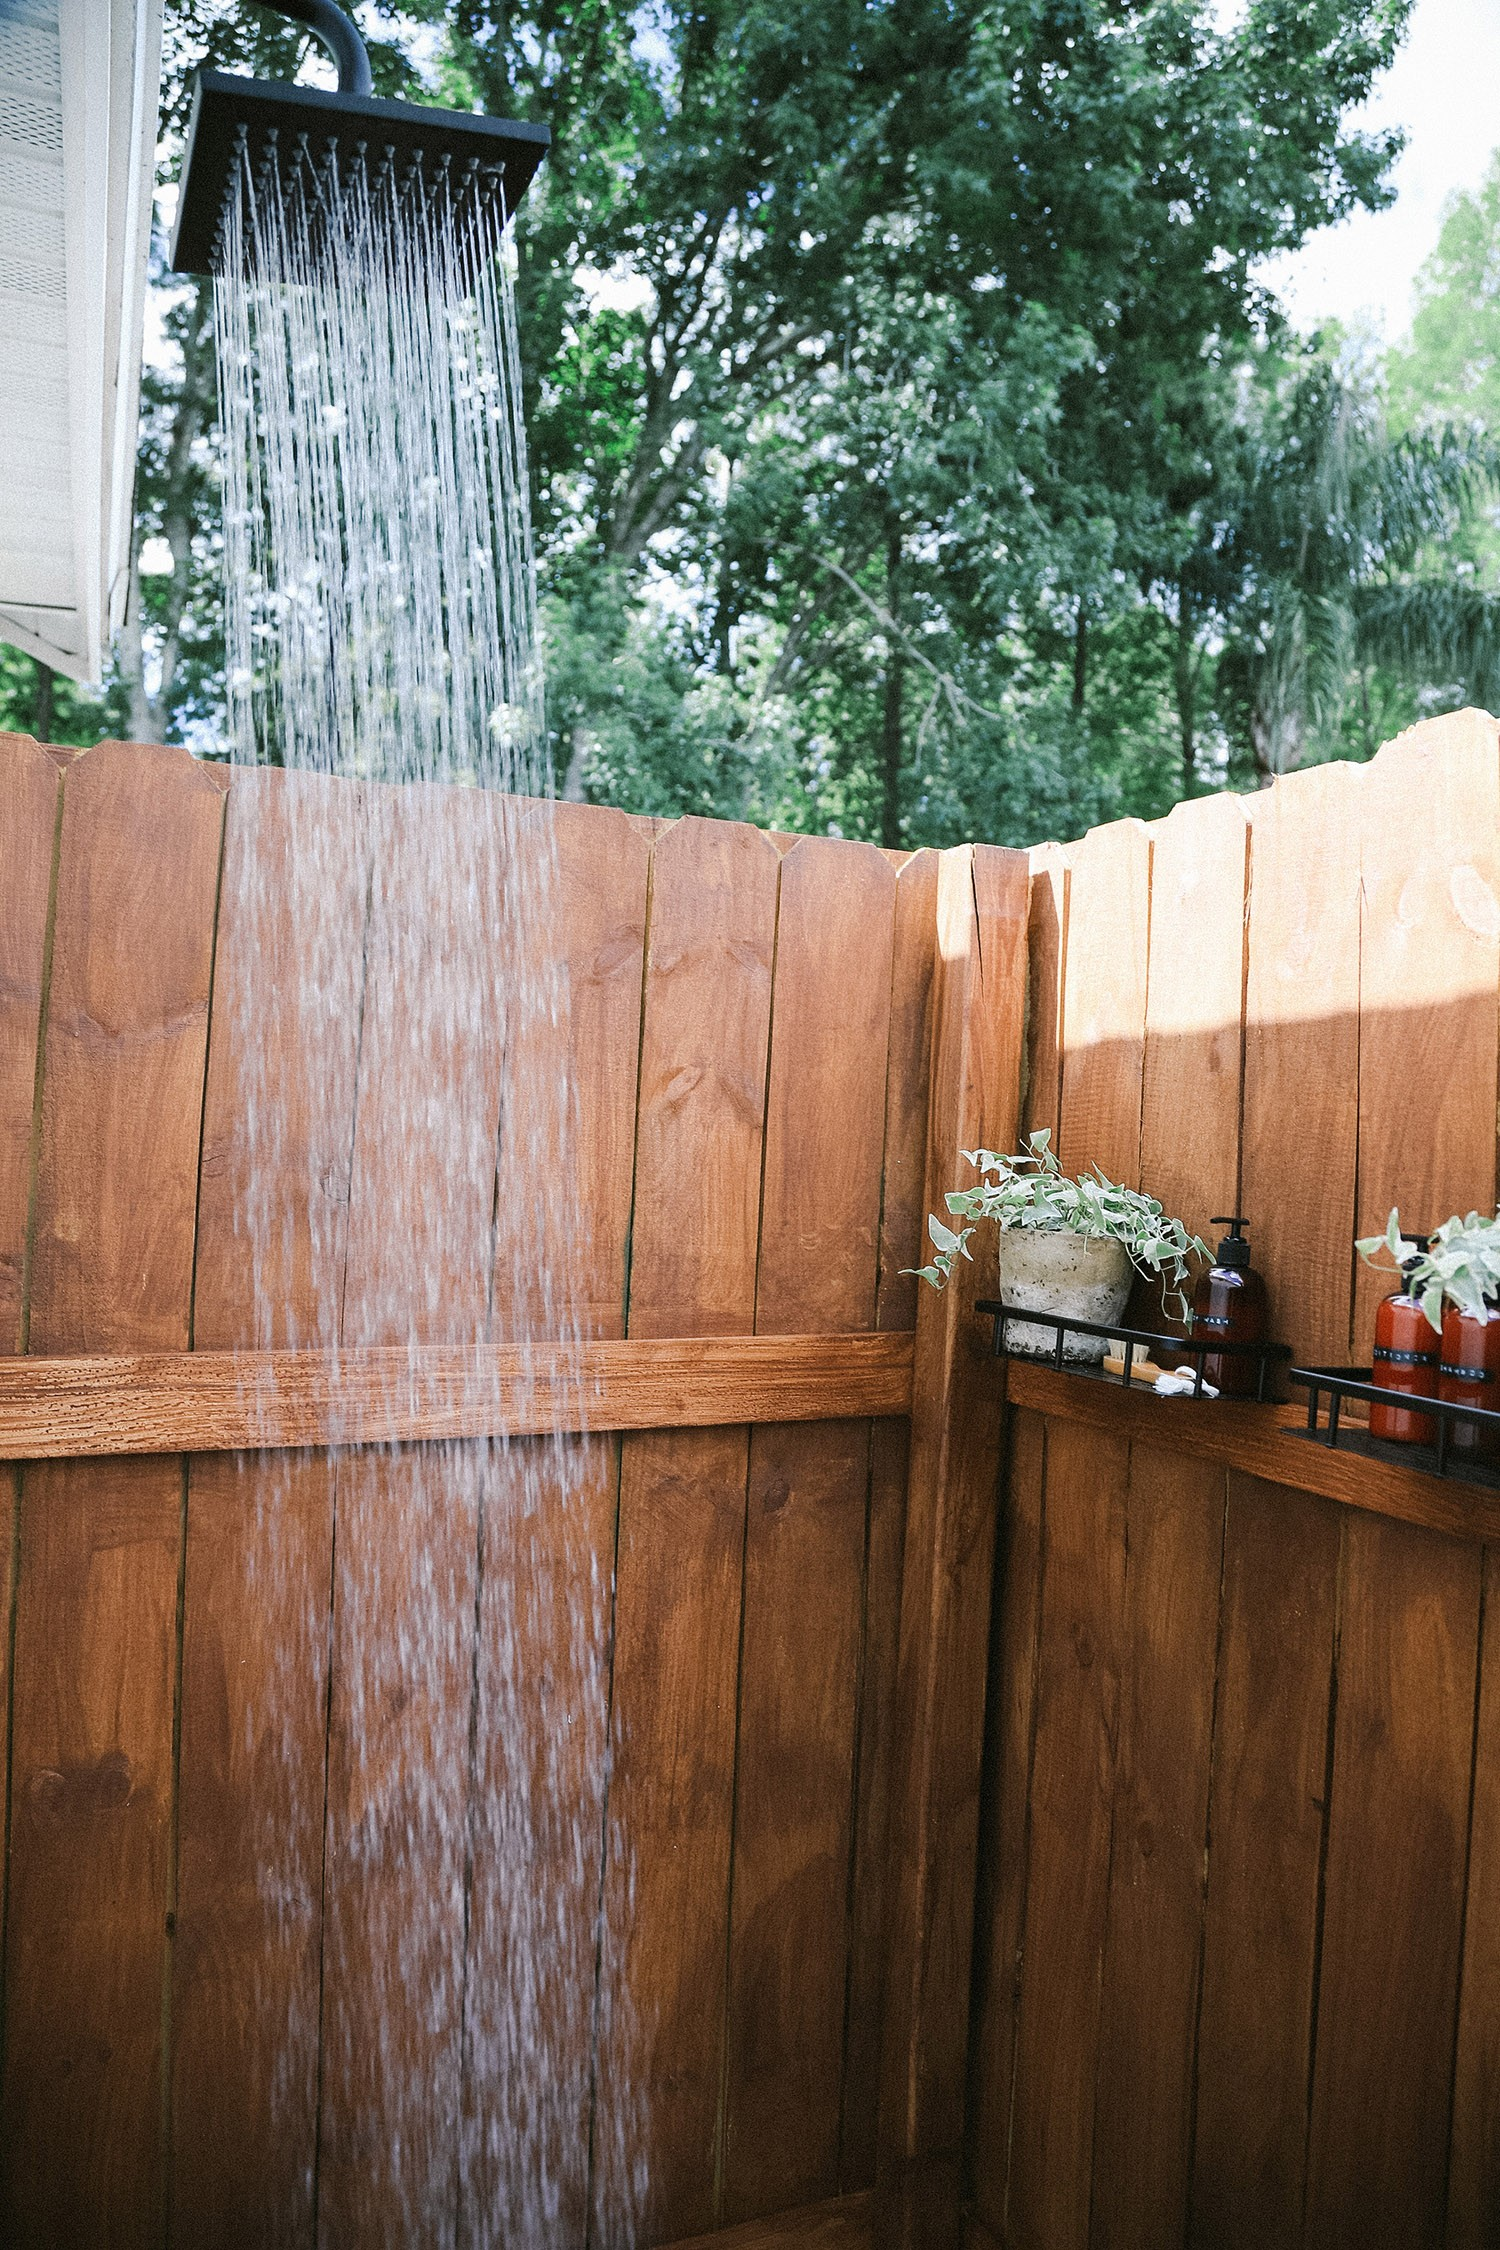 DIY Outdoor Shower Ideas on a Budget for the Ultimate Backyard Oasis | DIY Outdoor Shower by popular Florida DIY blog, Fresh Mommy Blog: image of a DIY outdoor shower.